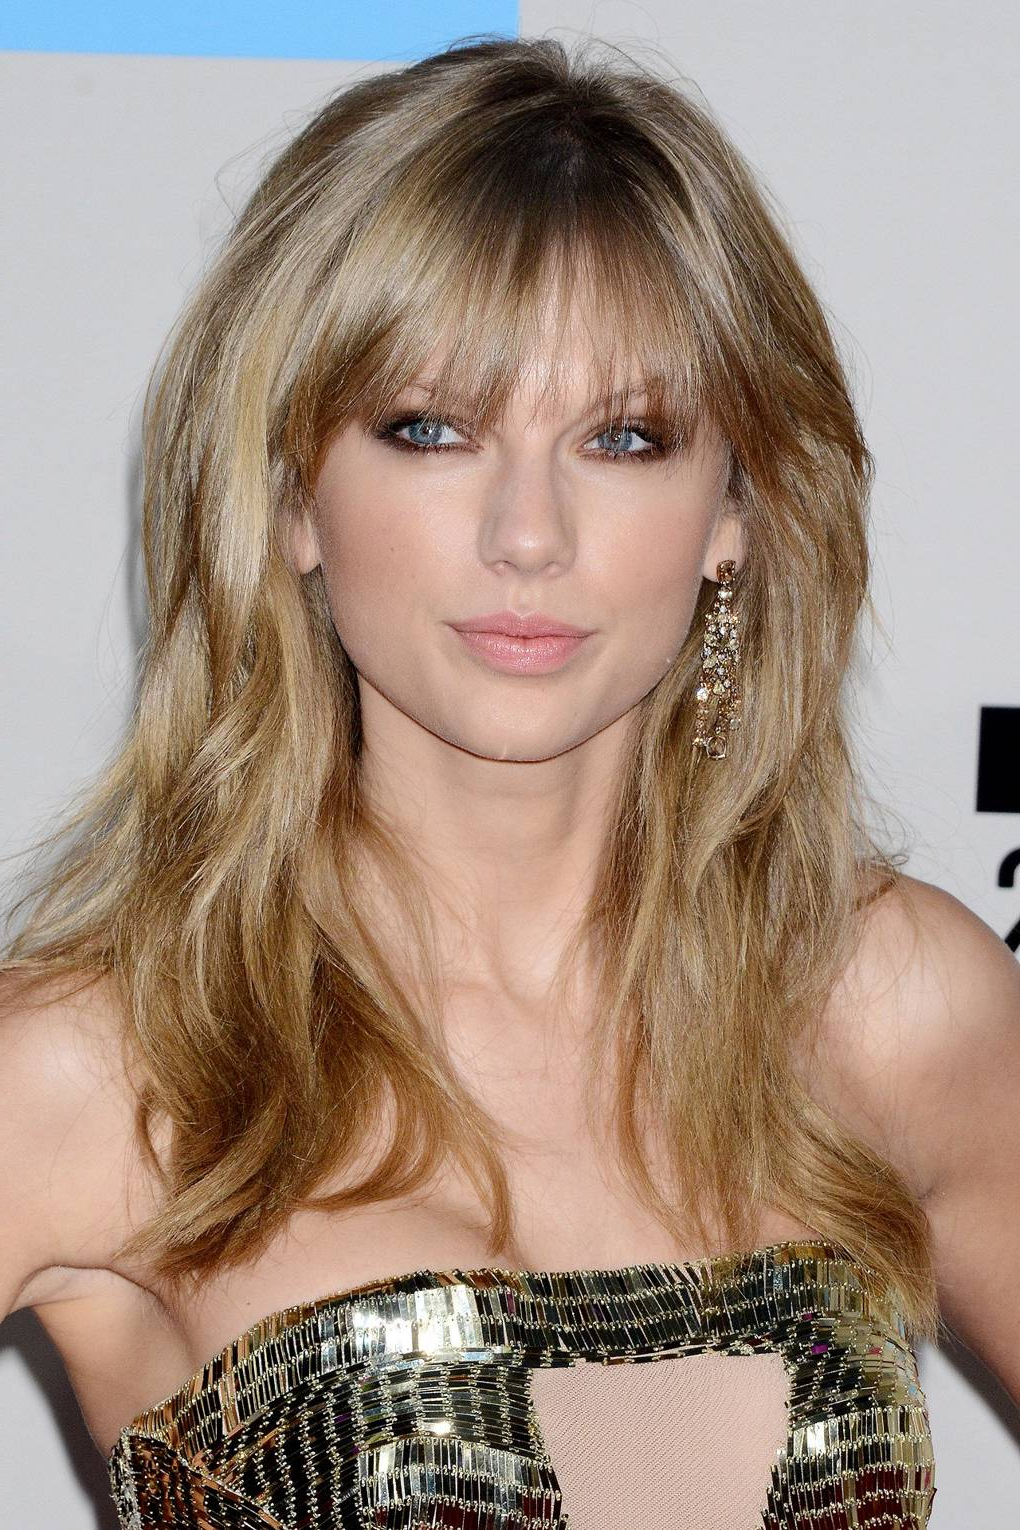 Taylor Swift Hair & Make Up Ideas – Hair Style & Beauty Pictures Inside Well Known Taylor Swift Medium Hairstyles (View 9 of 20)